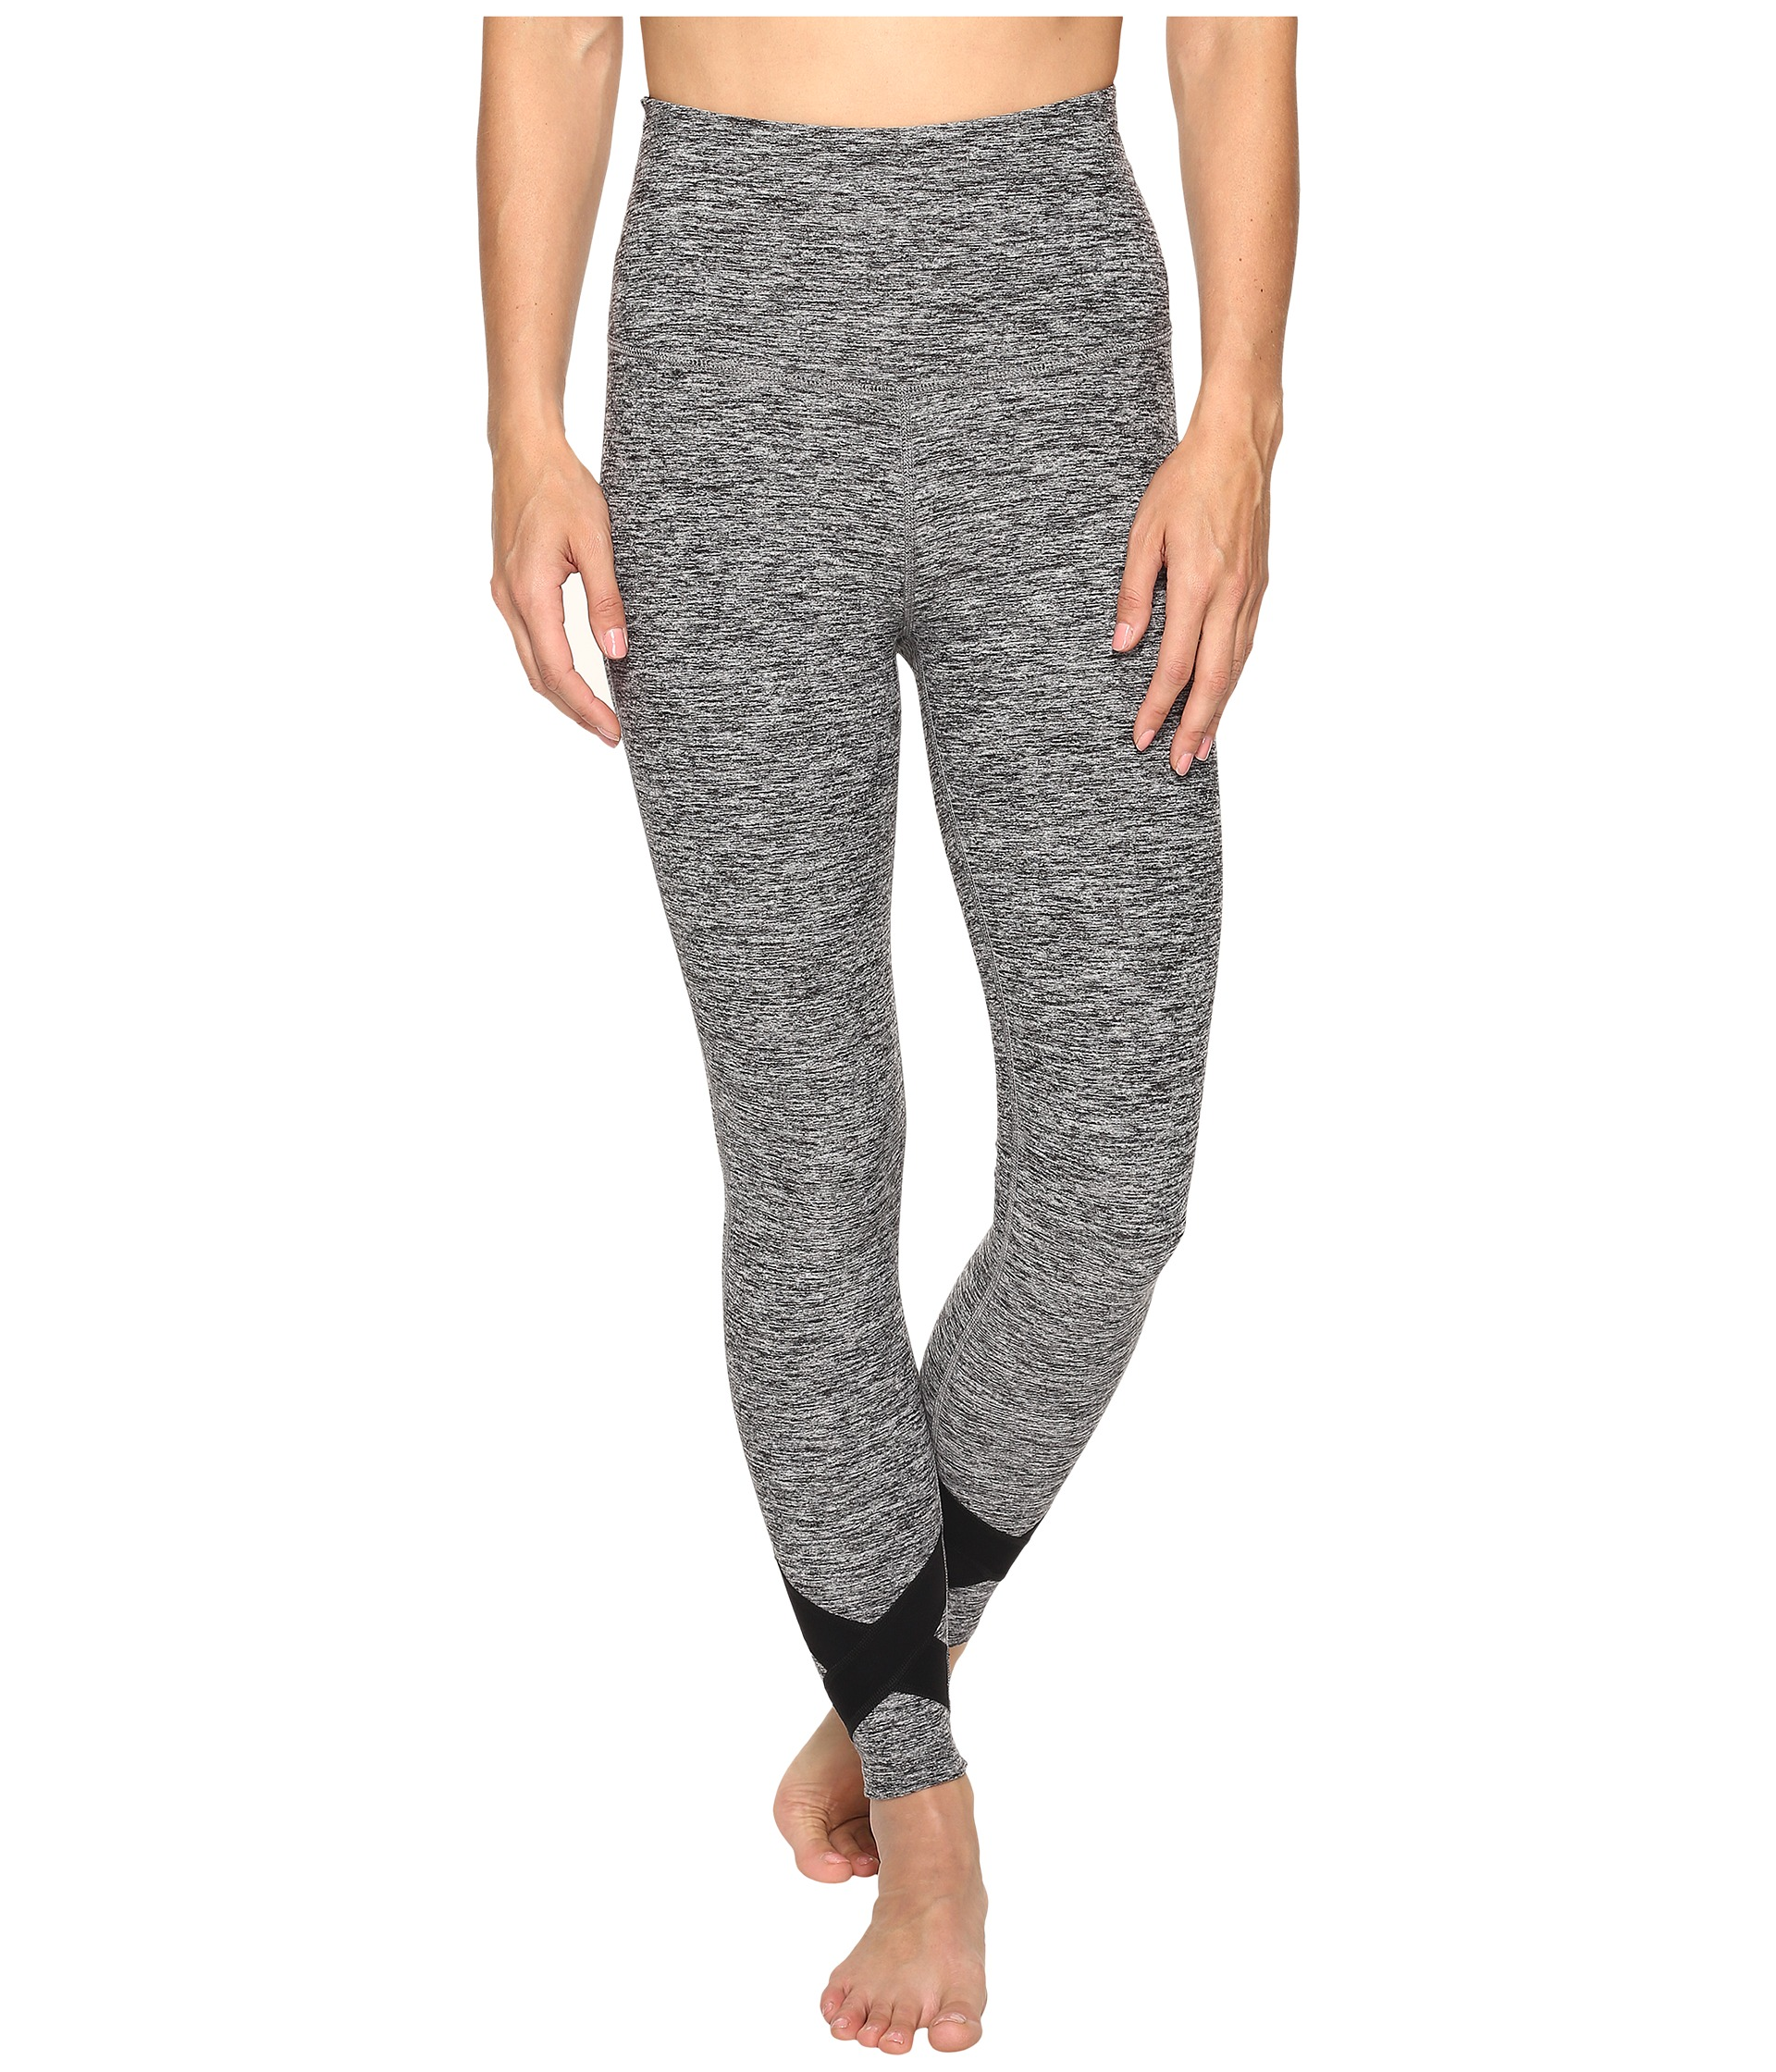 Former yoga instructor Jodi Guber Brufsky launched her life style label Beyond Yoga in , looking to construct apparel that is relaxed and functional. The silhouettes are design ed to complement curves and flat ter the figure, earning the brand a devoted following.